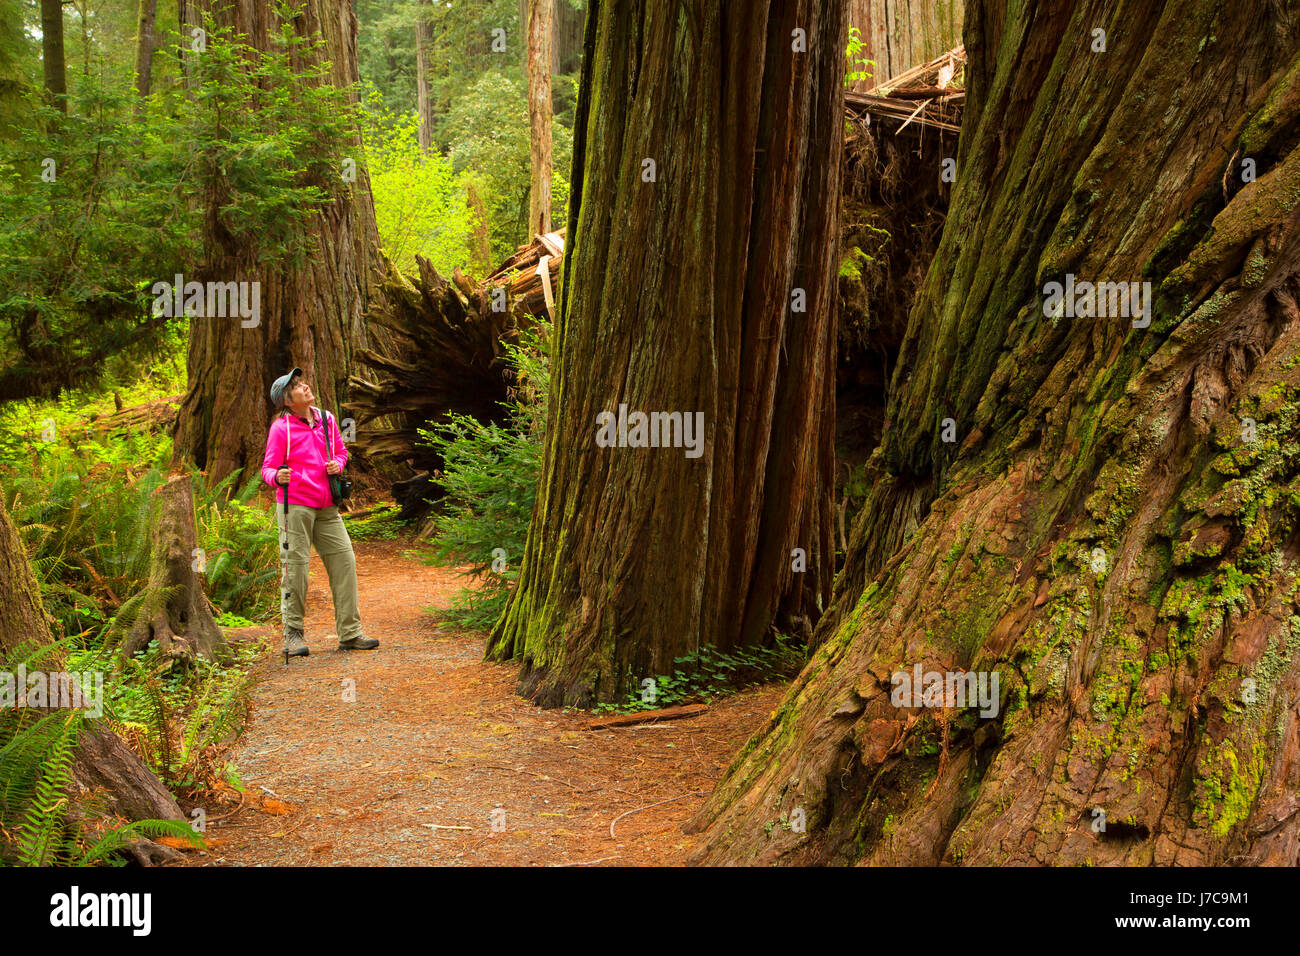 Hiker in Coast redwood forest along Simpson-Reed Discovery Trail, Jedediah Smith Redwoods State Park, Redwood National - Stock Image